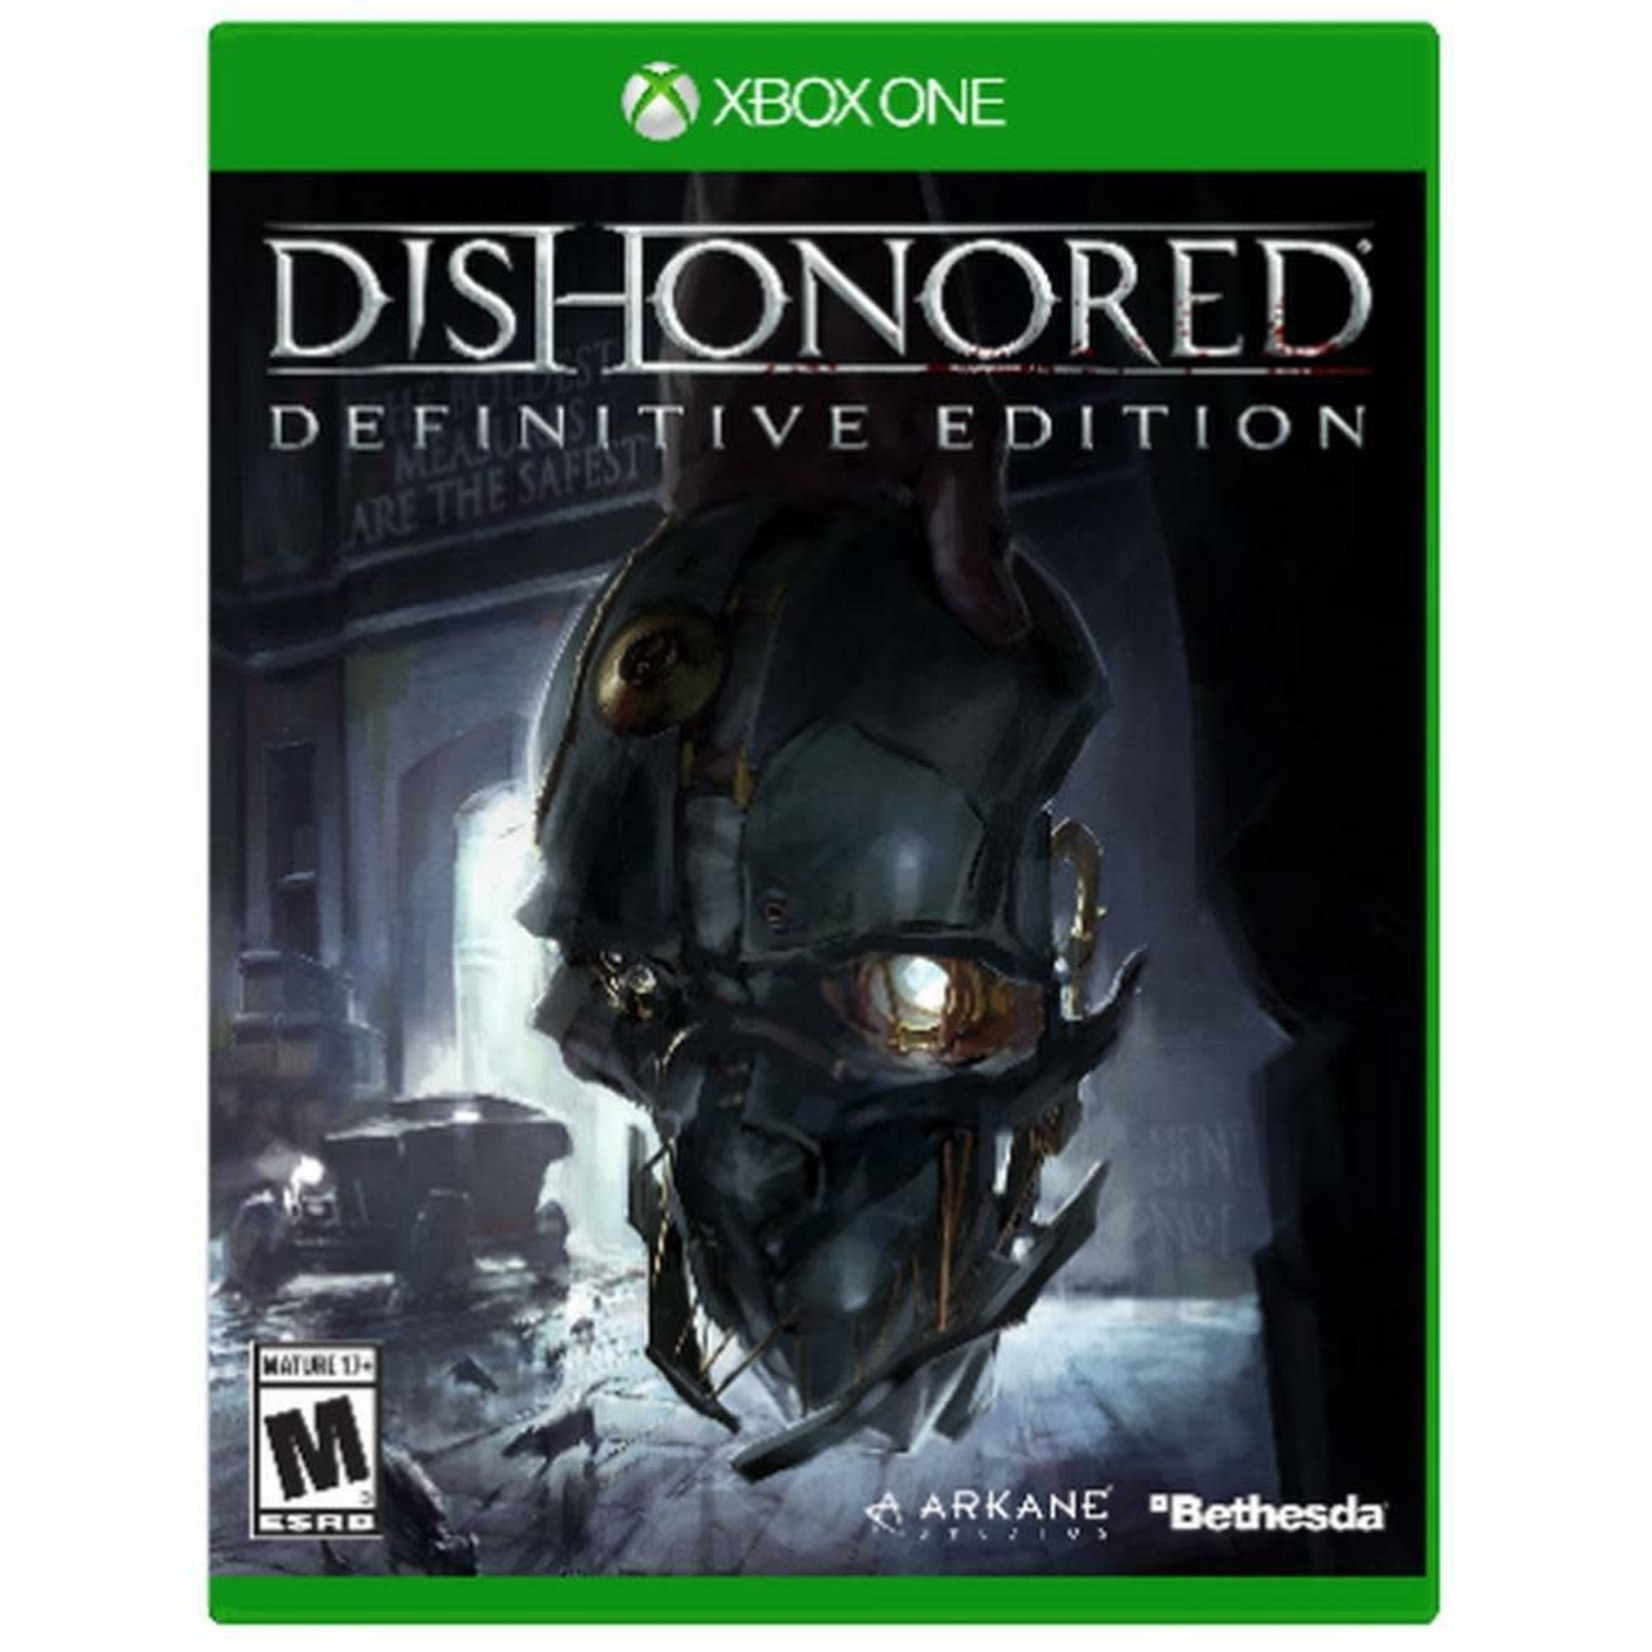 XB1-Dishonored Definitive Edition